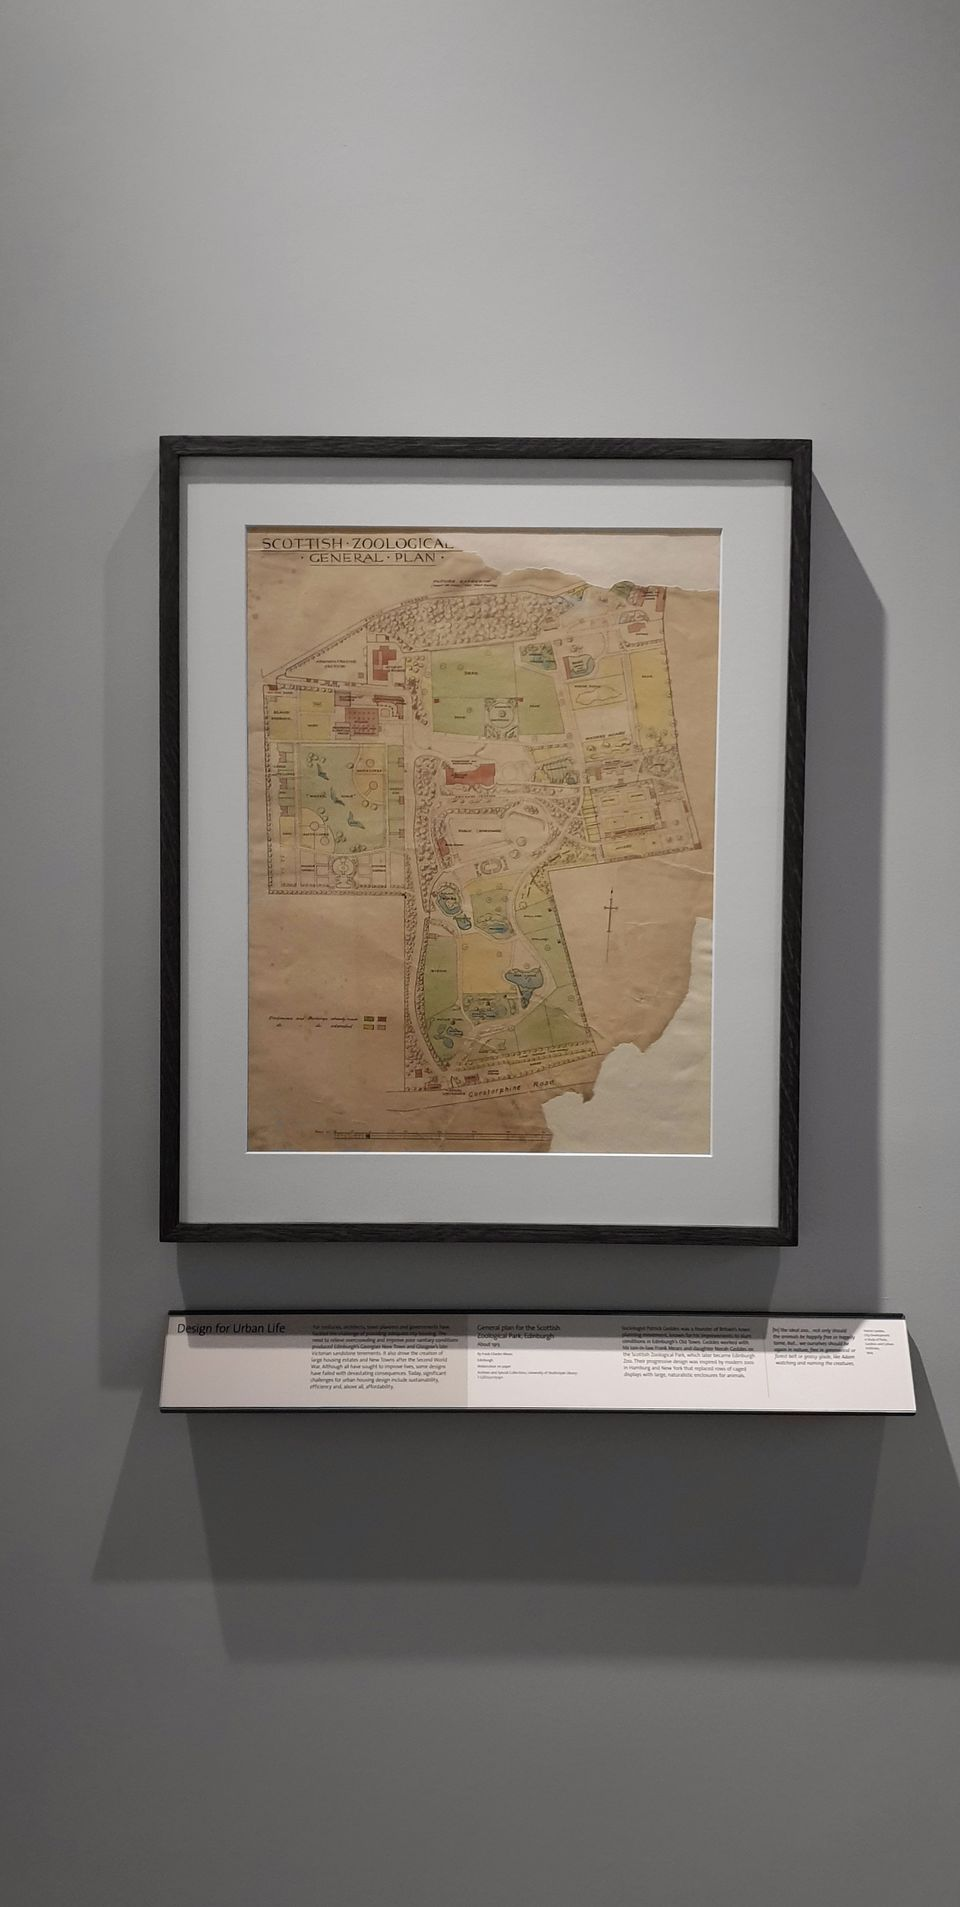 A grey wall upon which hangs an archival plan of the Scottish Zoological Garden. As a result of its age, it shows some wear and tear. Underneath the framed plan is a long panel of interpretation.